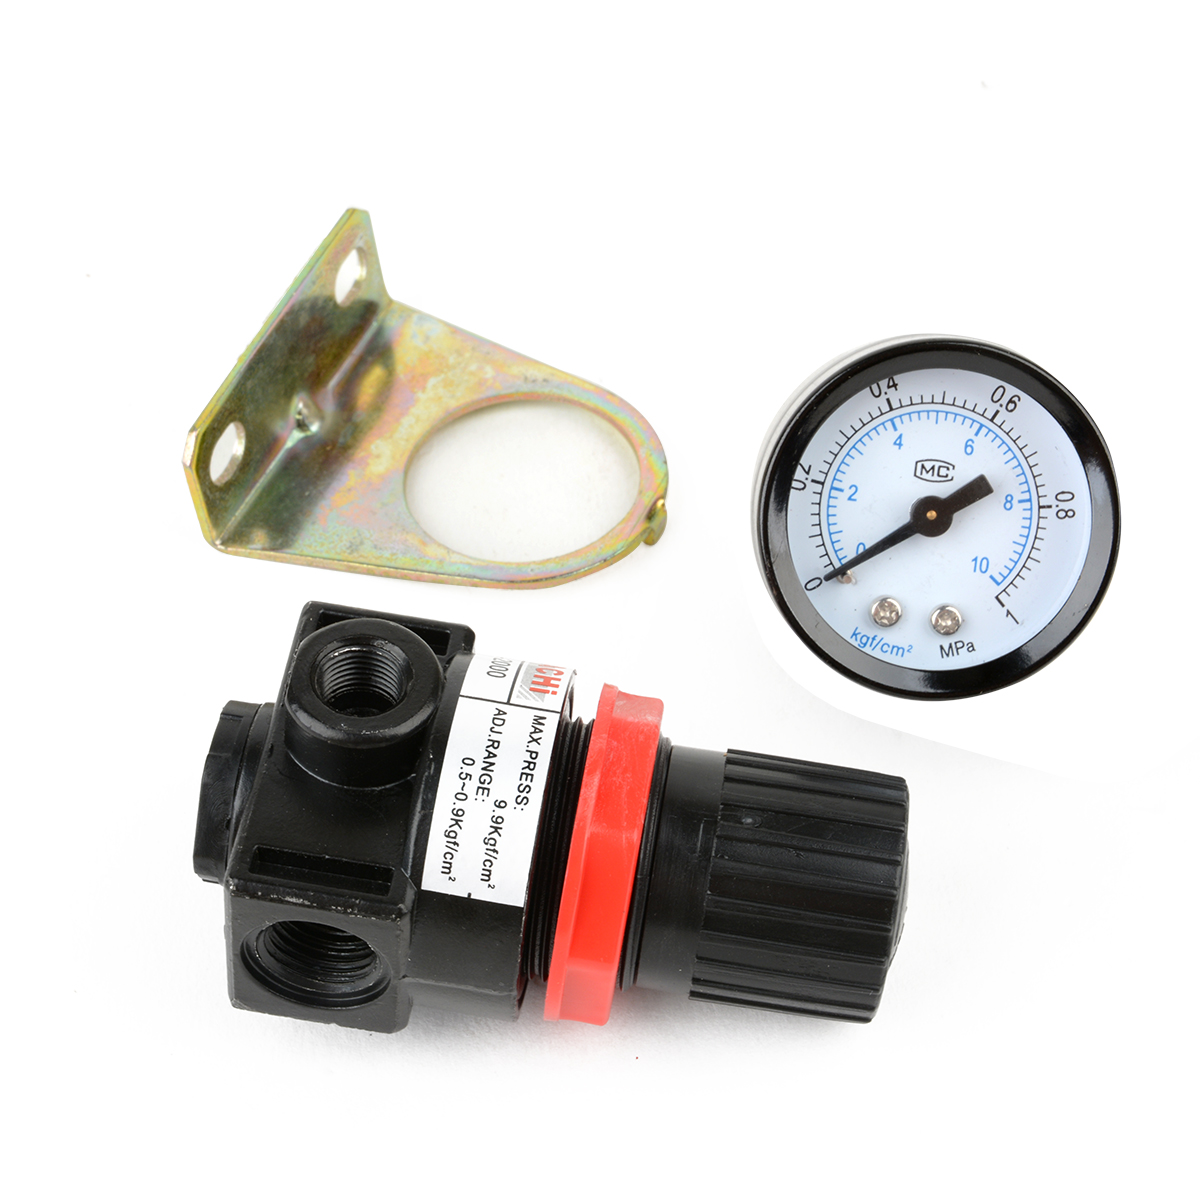 1pc Air Control Pressure Gauge Compressor Relief Regulator Regulating Valve Mayitr Pneumatic Components Parts 75*40*40mm 1pc air compressor pressure regulator valve air control pressure gauge relief regulator 75x40x40mm